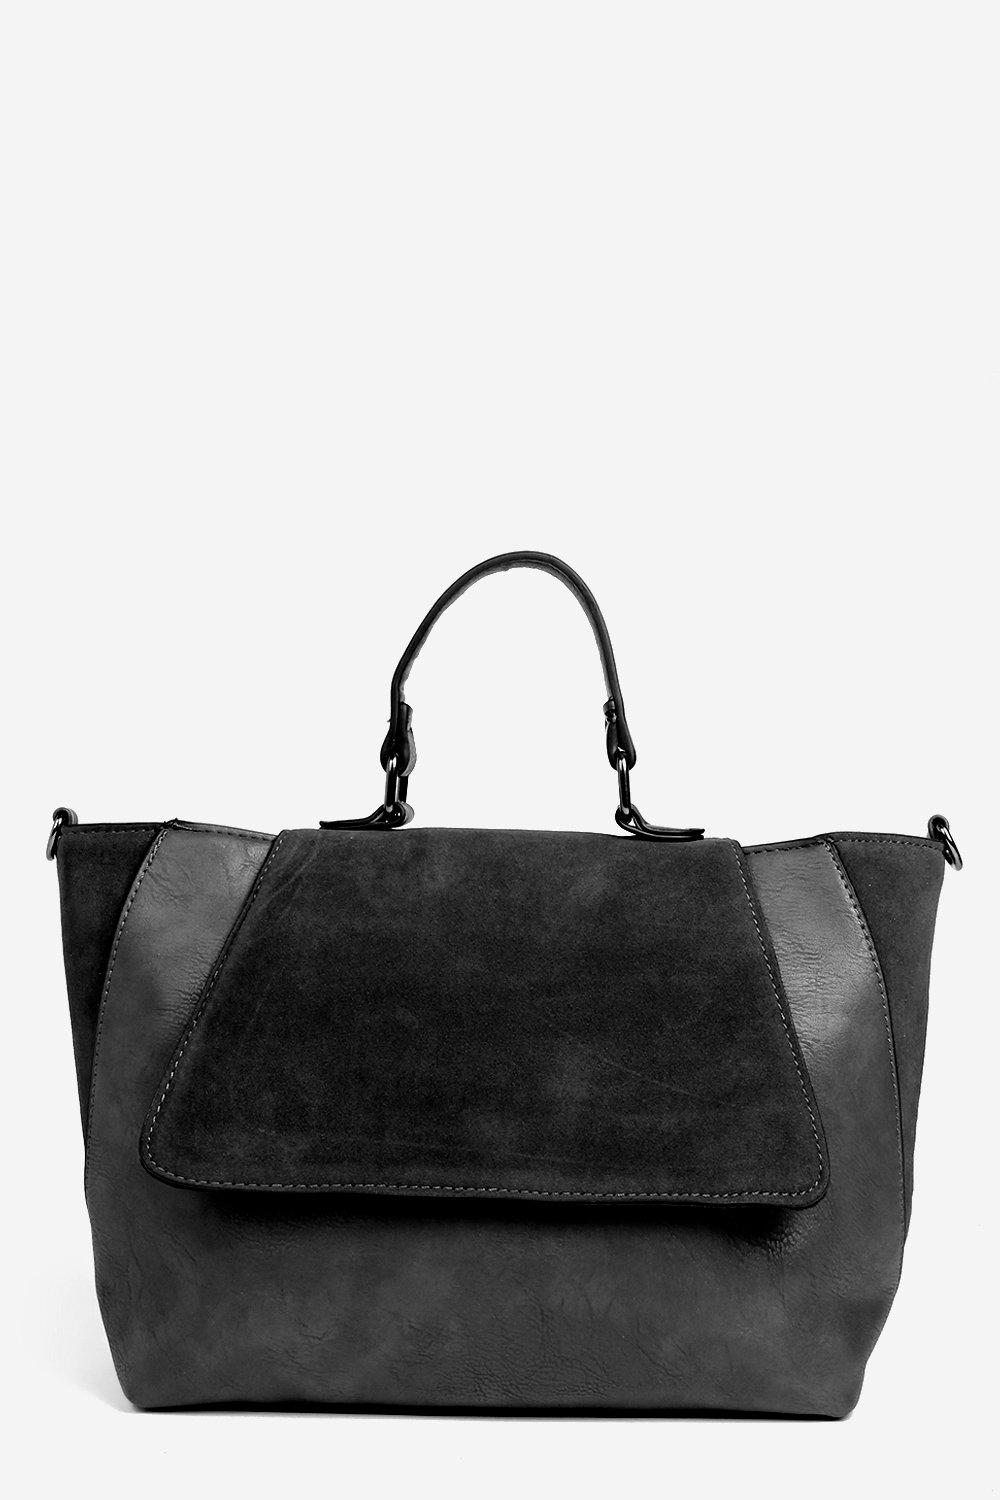 Lucy Winged Suedette Faux Leather Bag